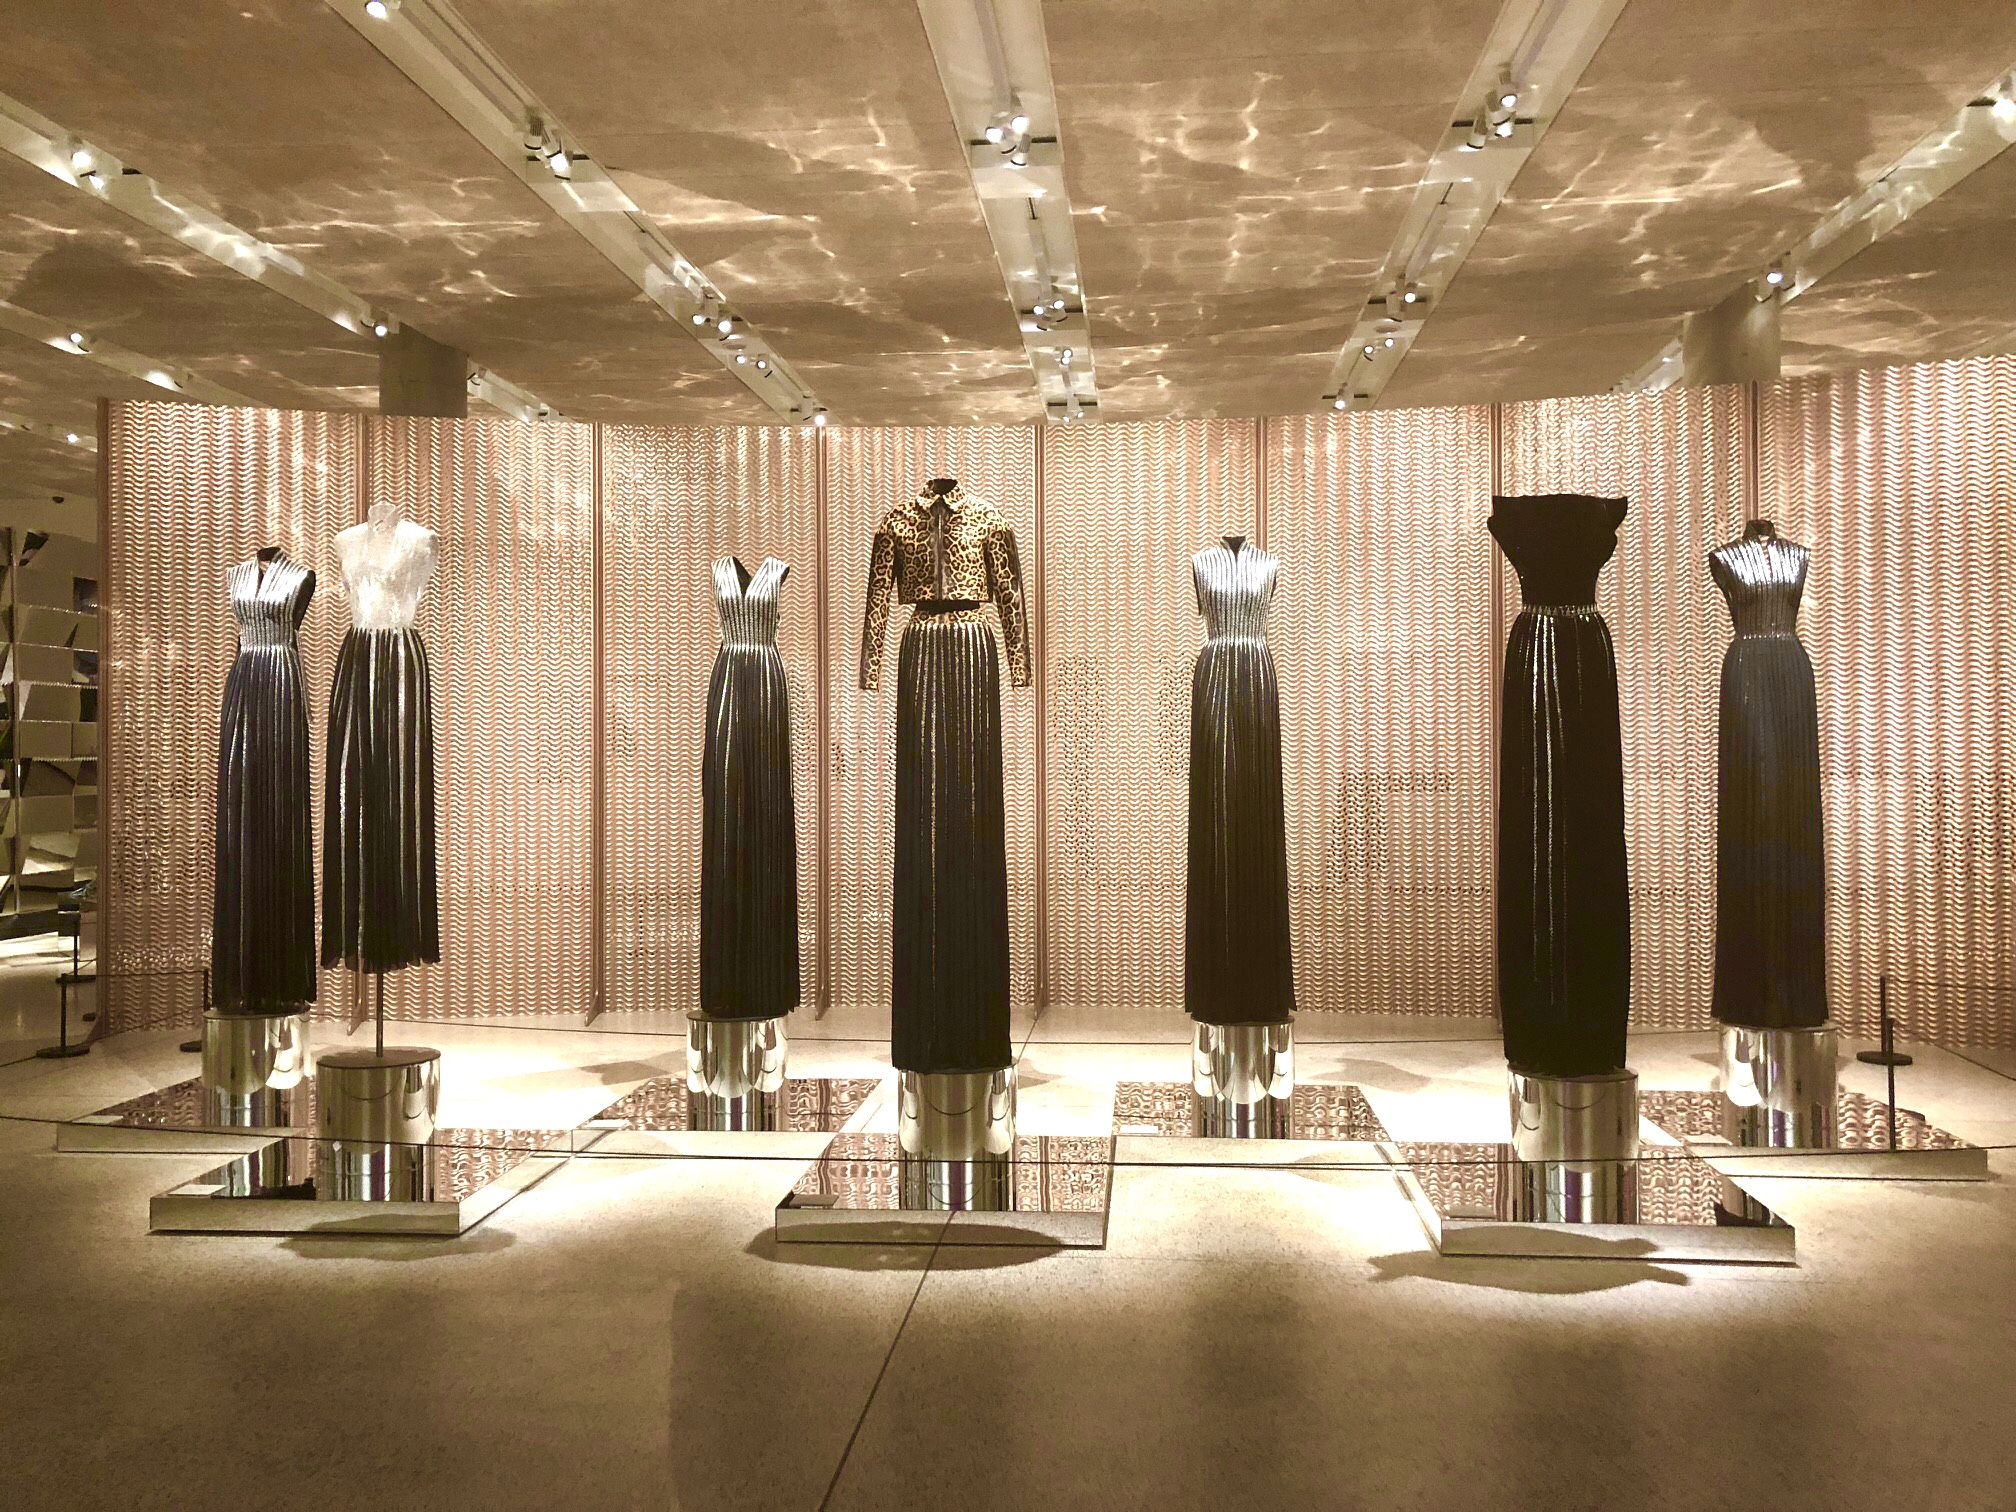 Alaia exhibit at The Design Museum